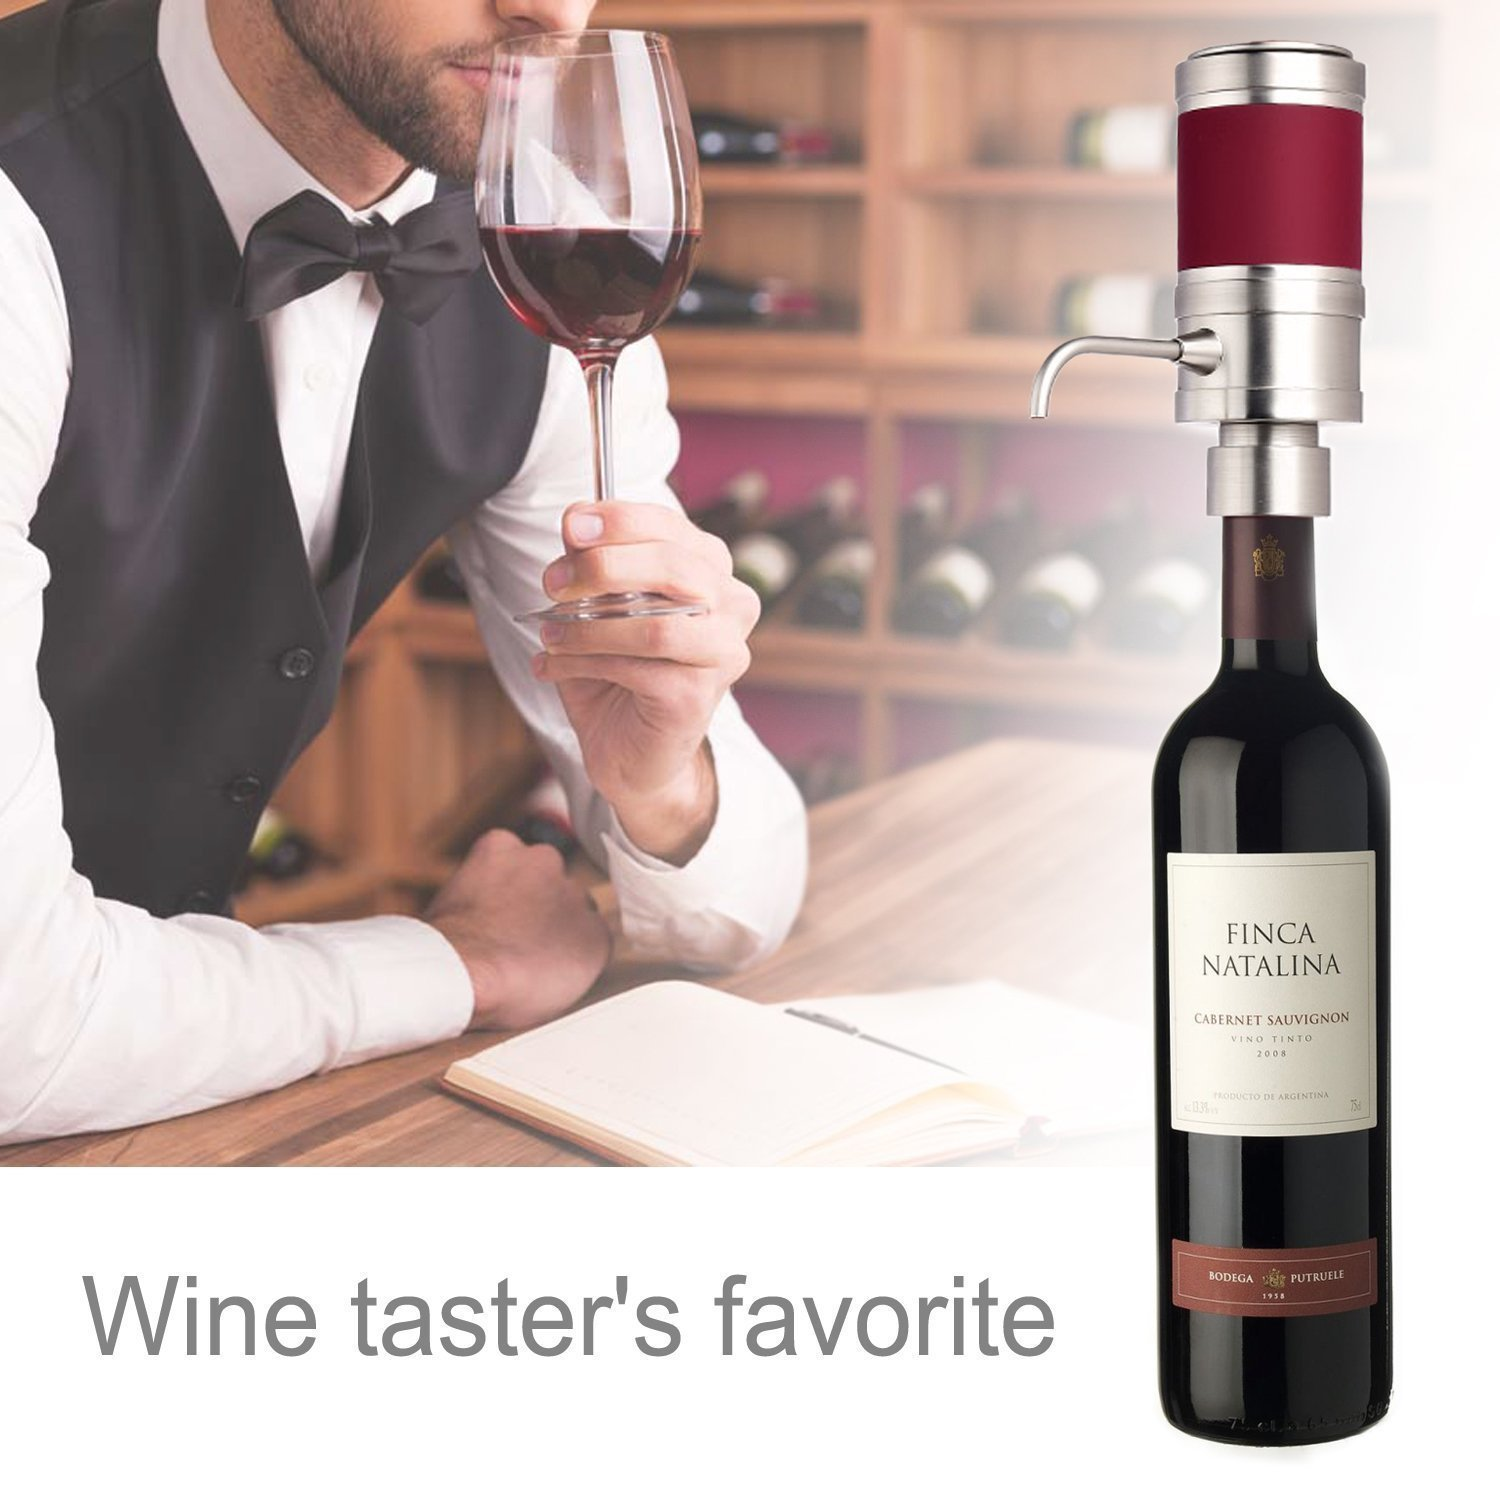 Electric Wine Aerator Dispenser Pump - Portable and Automatic Bottle Breather Tap Machine - Air Decanter Diffuser System for Red and White Wine w/ Unique Metal Pourer Spout - NutriChef PSLWPMP50